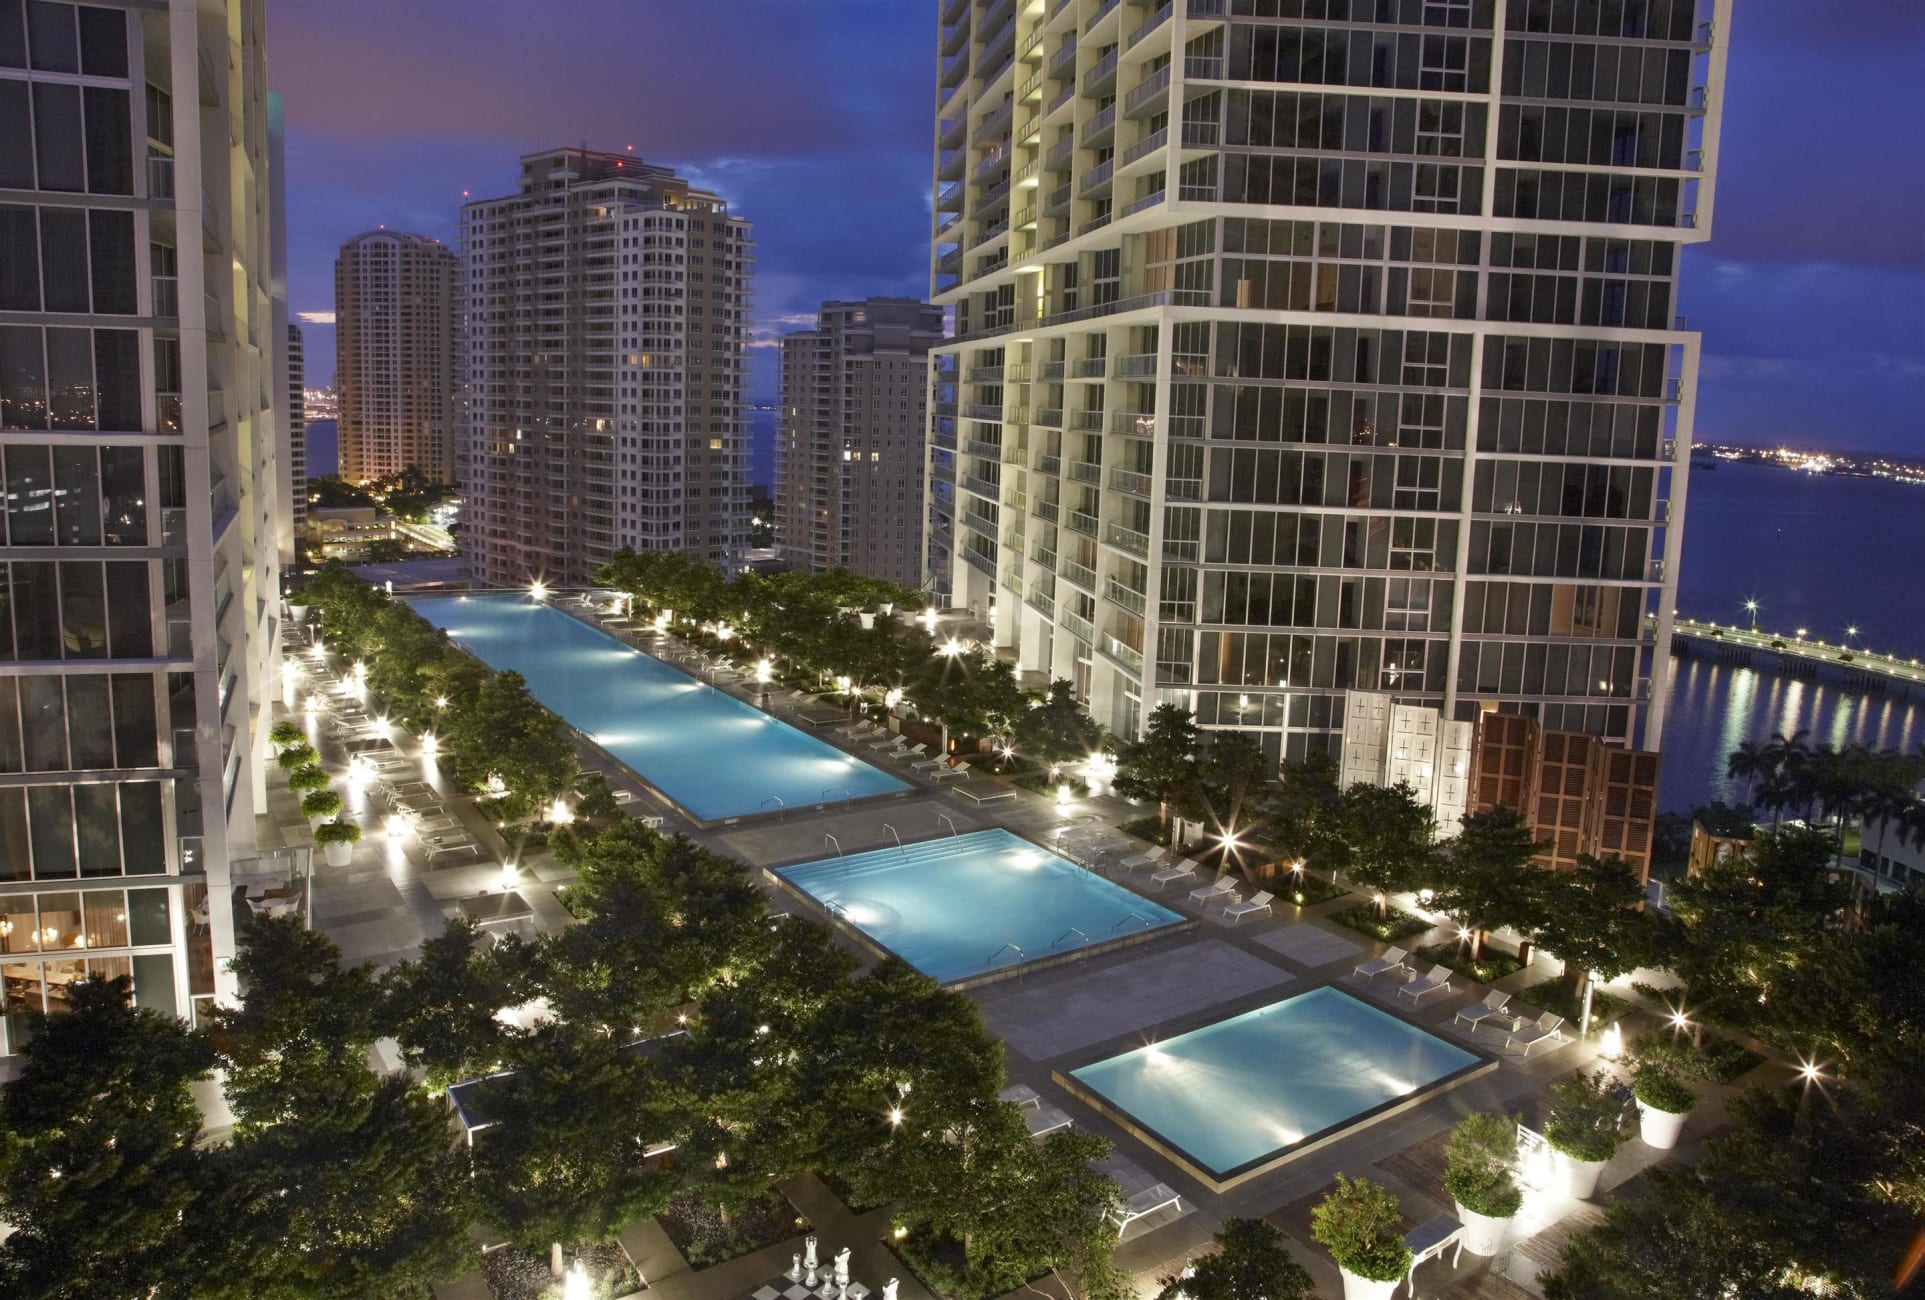 Miami Hotels Hotels Offers For Students 2020